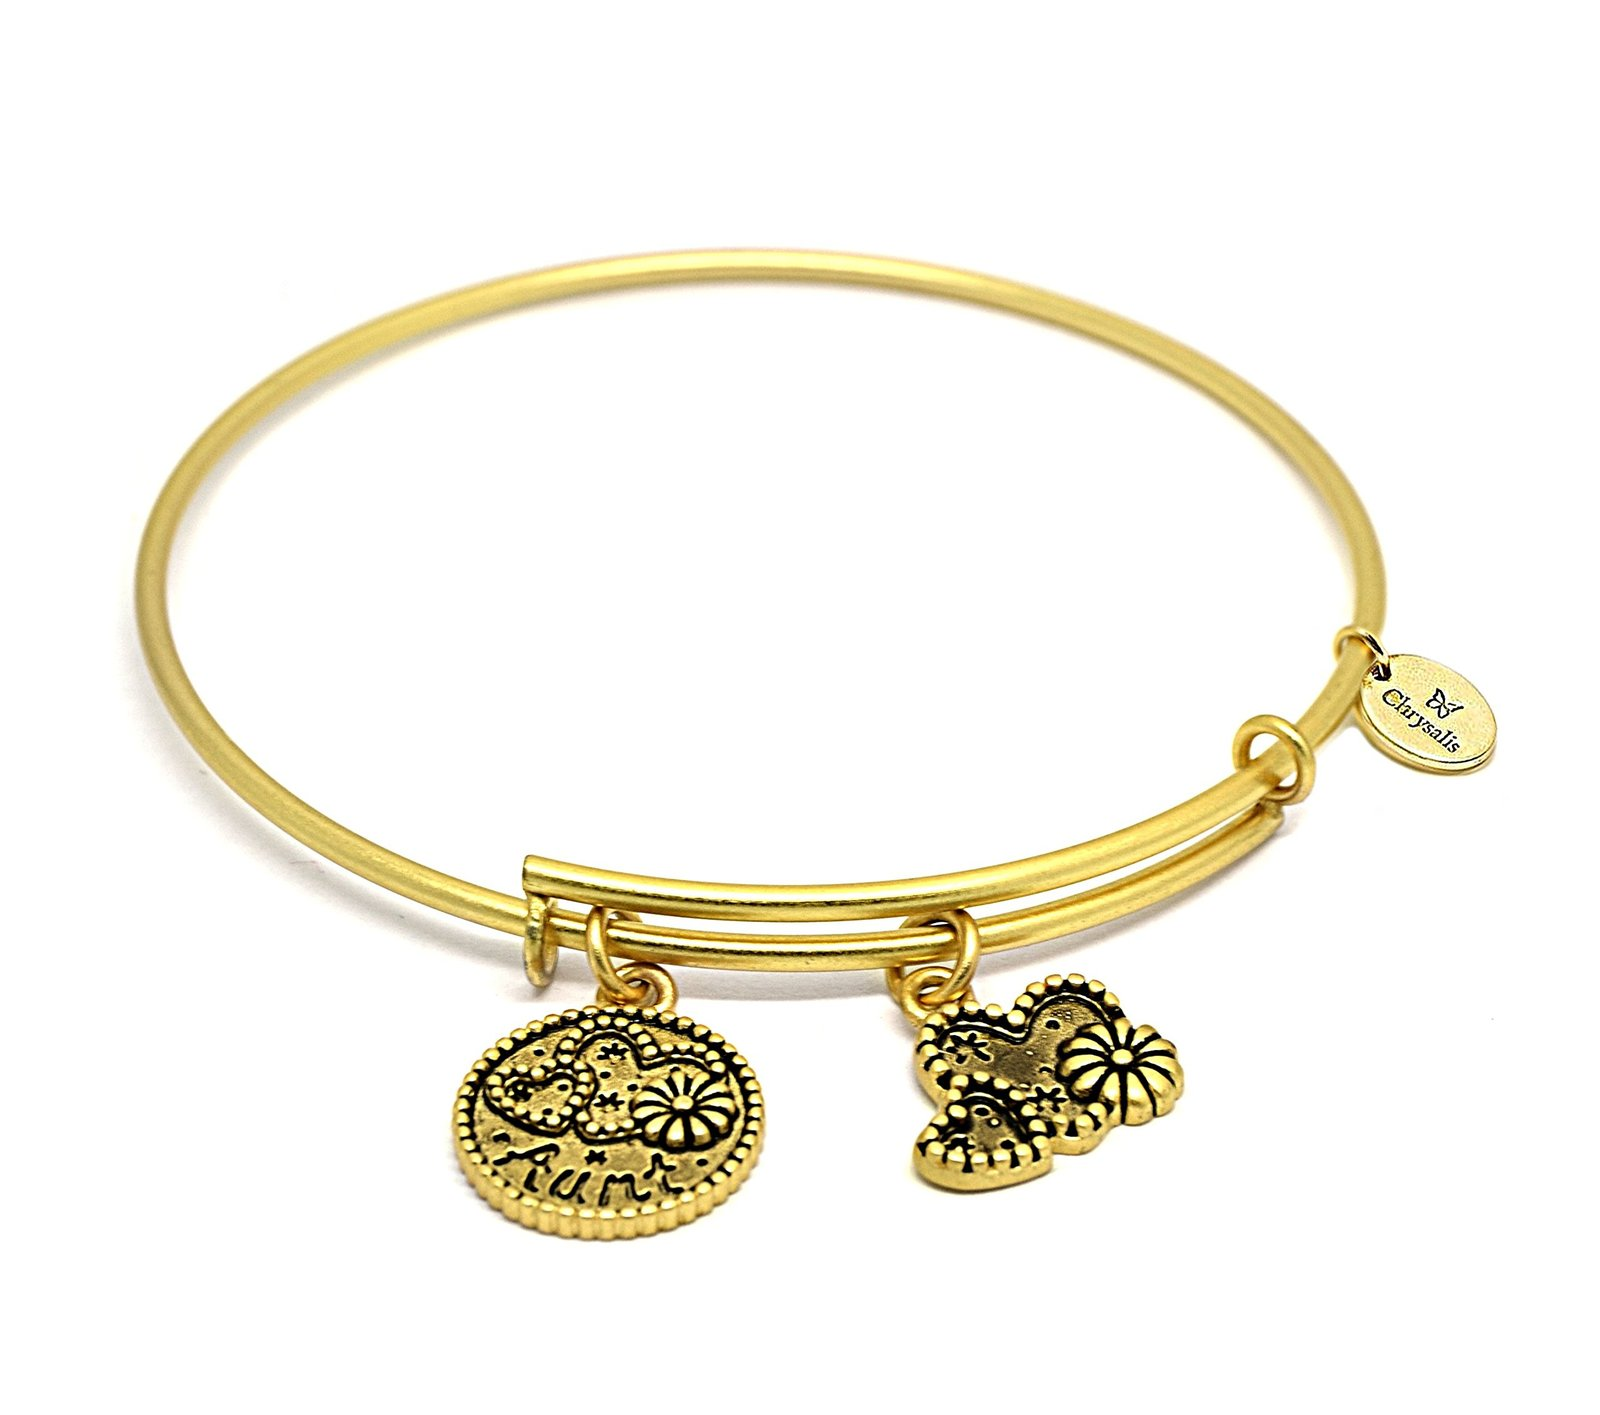 a04f9776cc815 Chrysalis Aunt Friend & Family CRBT0706GP Gold-plated Expandable Bangle